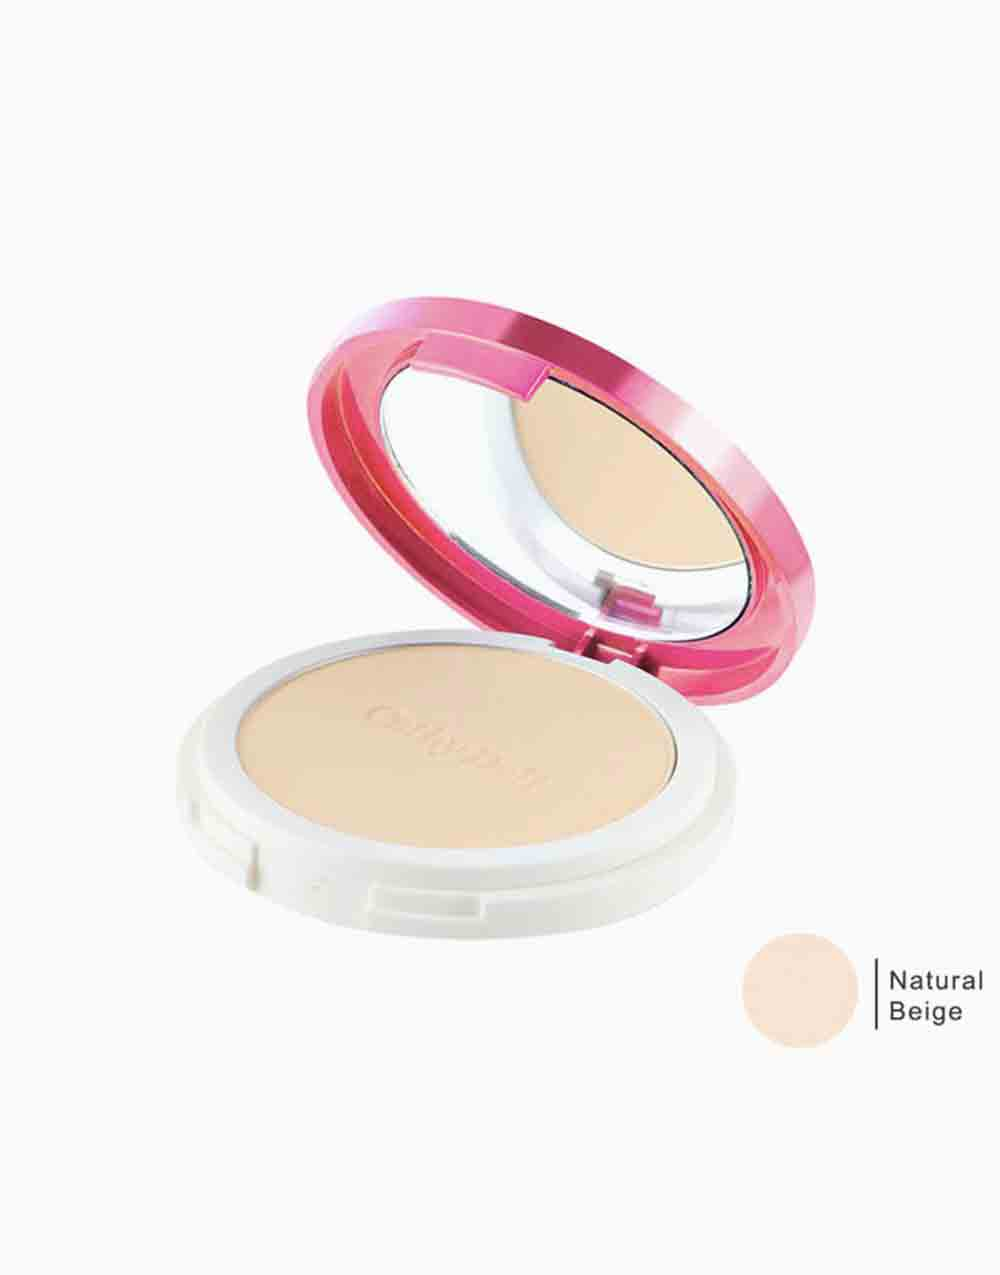 Magic Gluta Pact SPF 50 PA+++ by Cathy Doll | Natural Beige